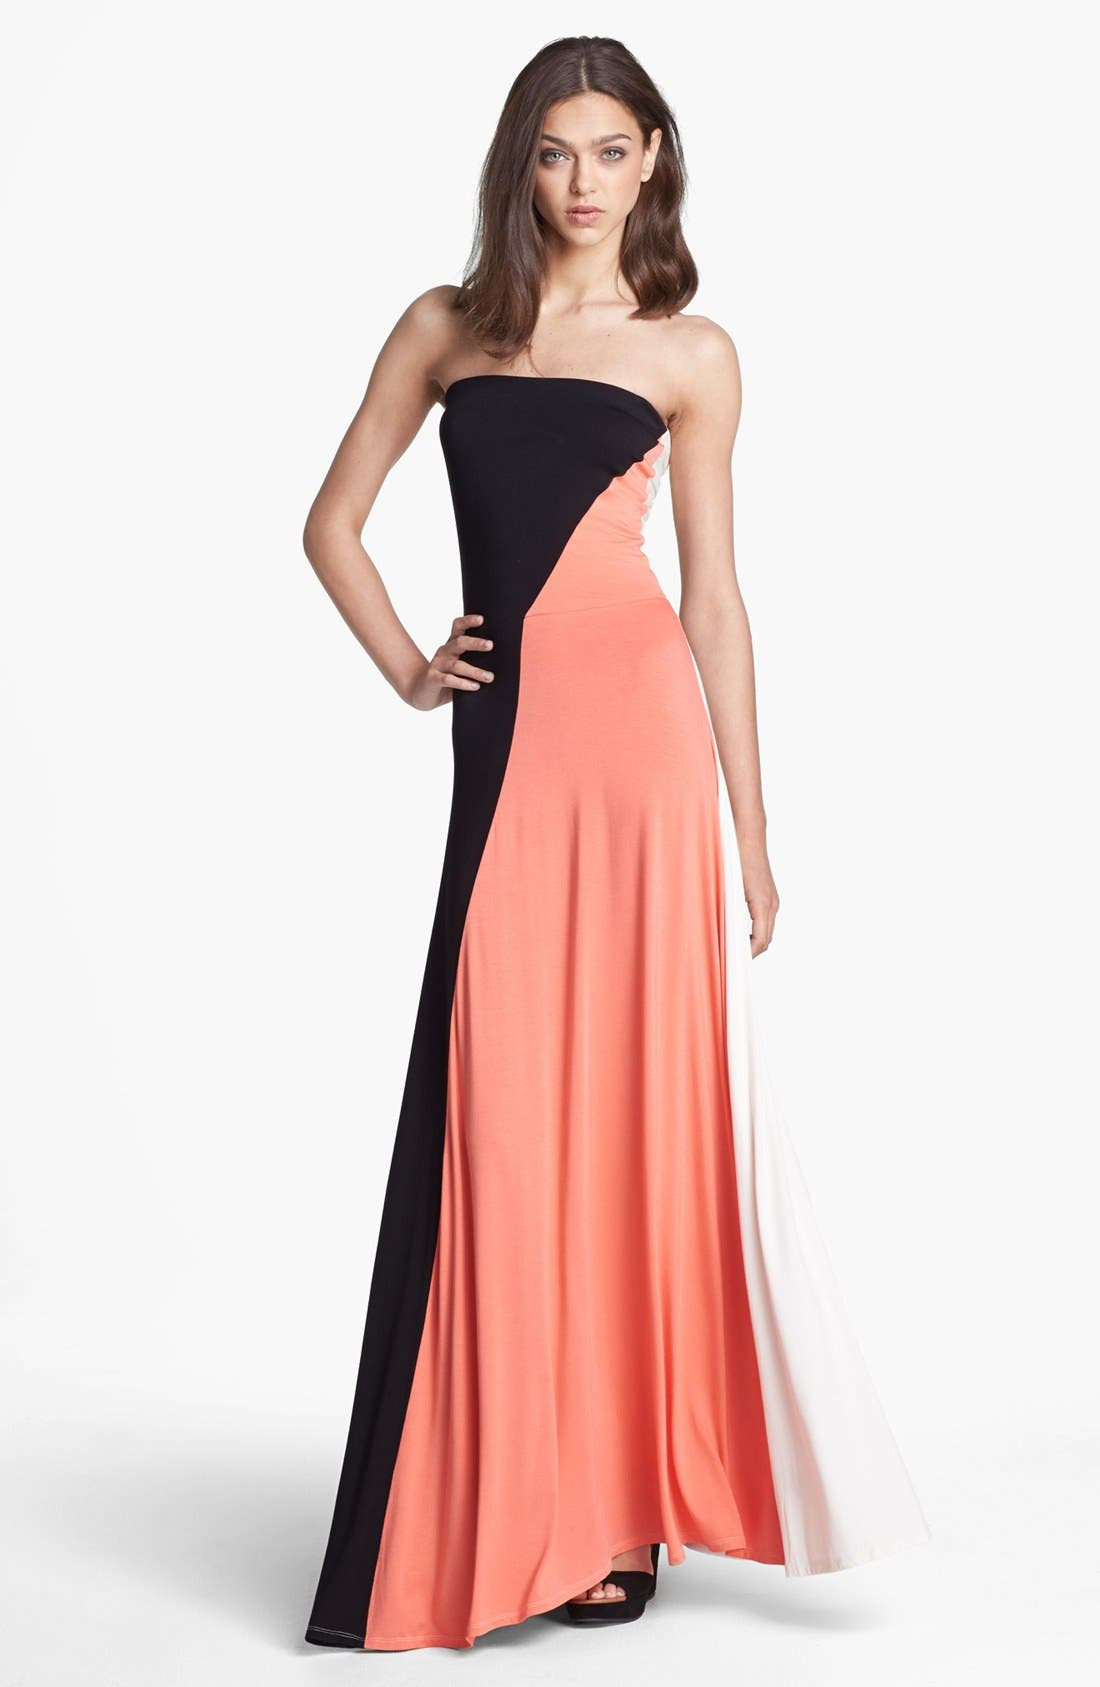 Alternate Image 1 Selected - Felicity & Coco 'Aimery' Colorblock Jersey Maxi Dress (Nordstrom Exclusive)